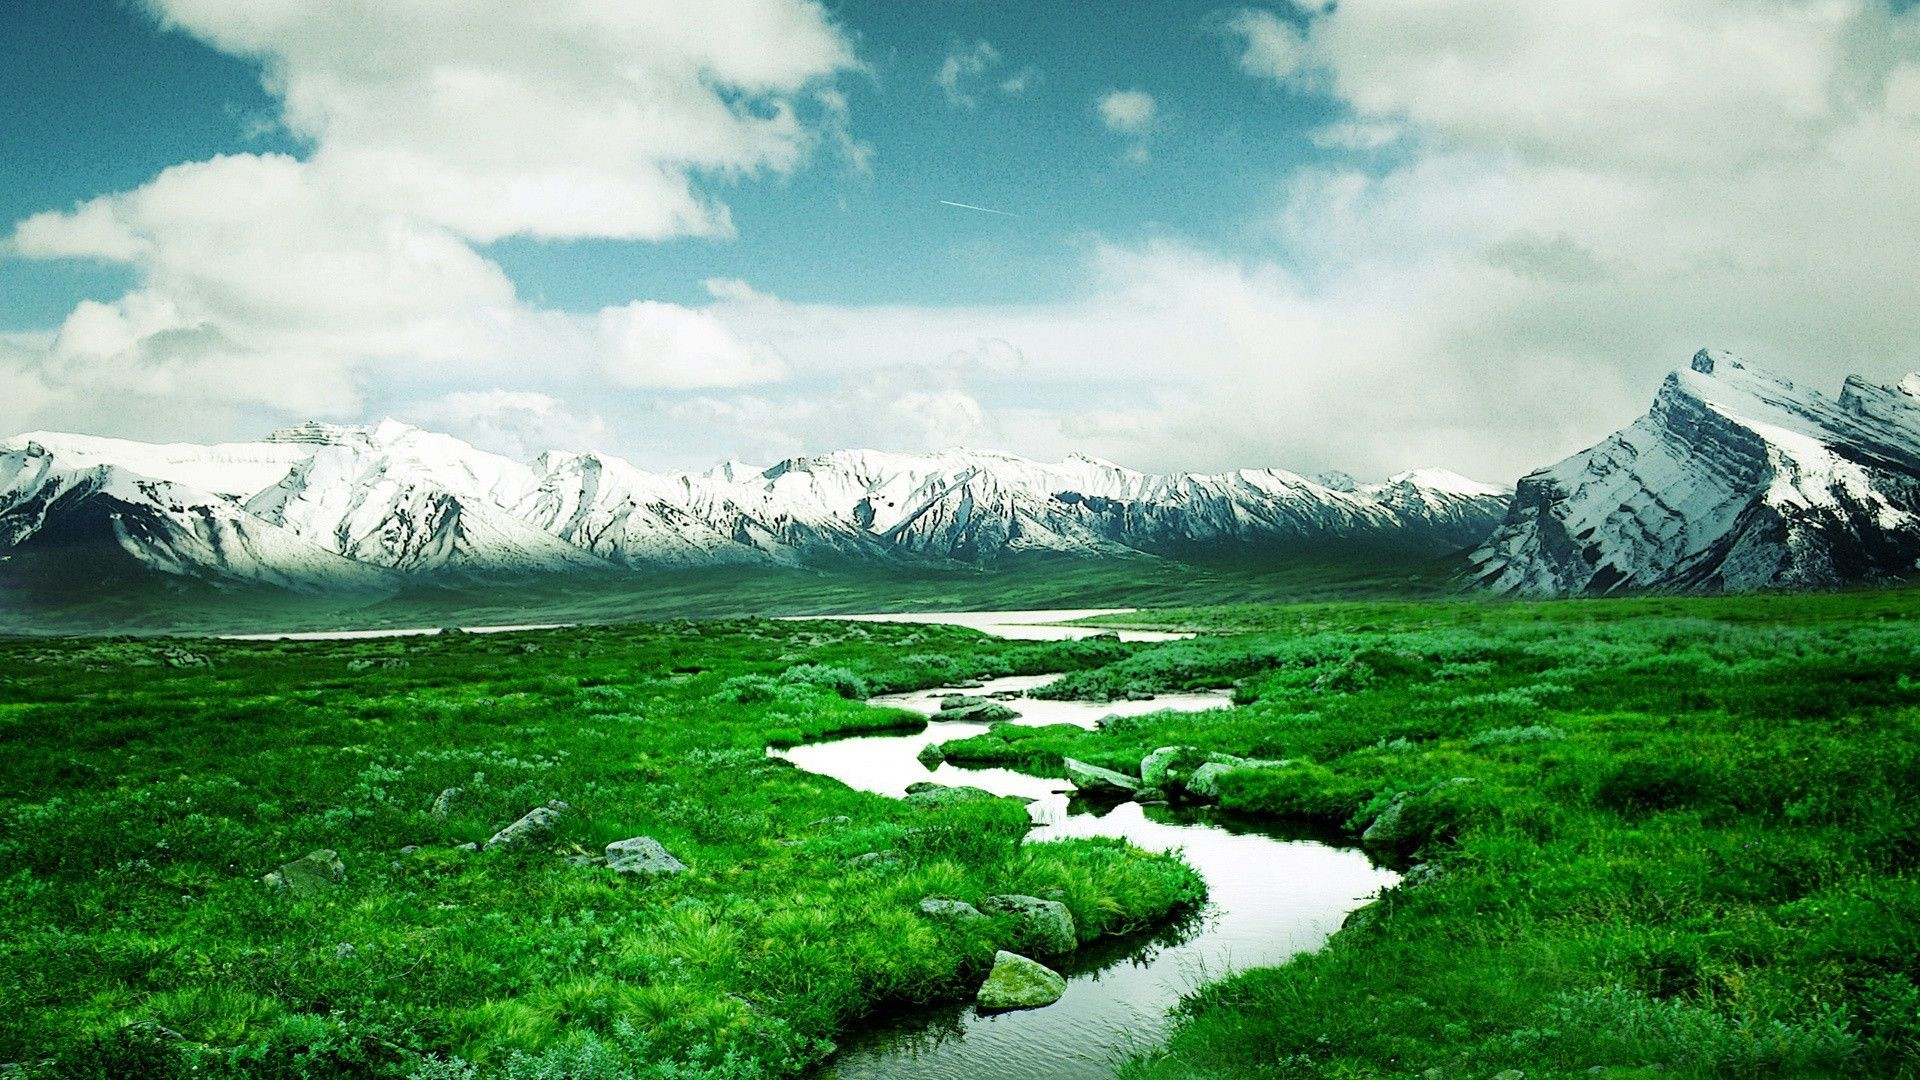 Hd Nature Wallpapers For Desktop 65 Images